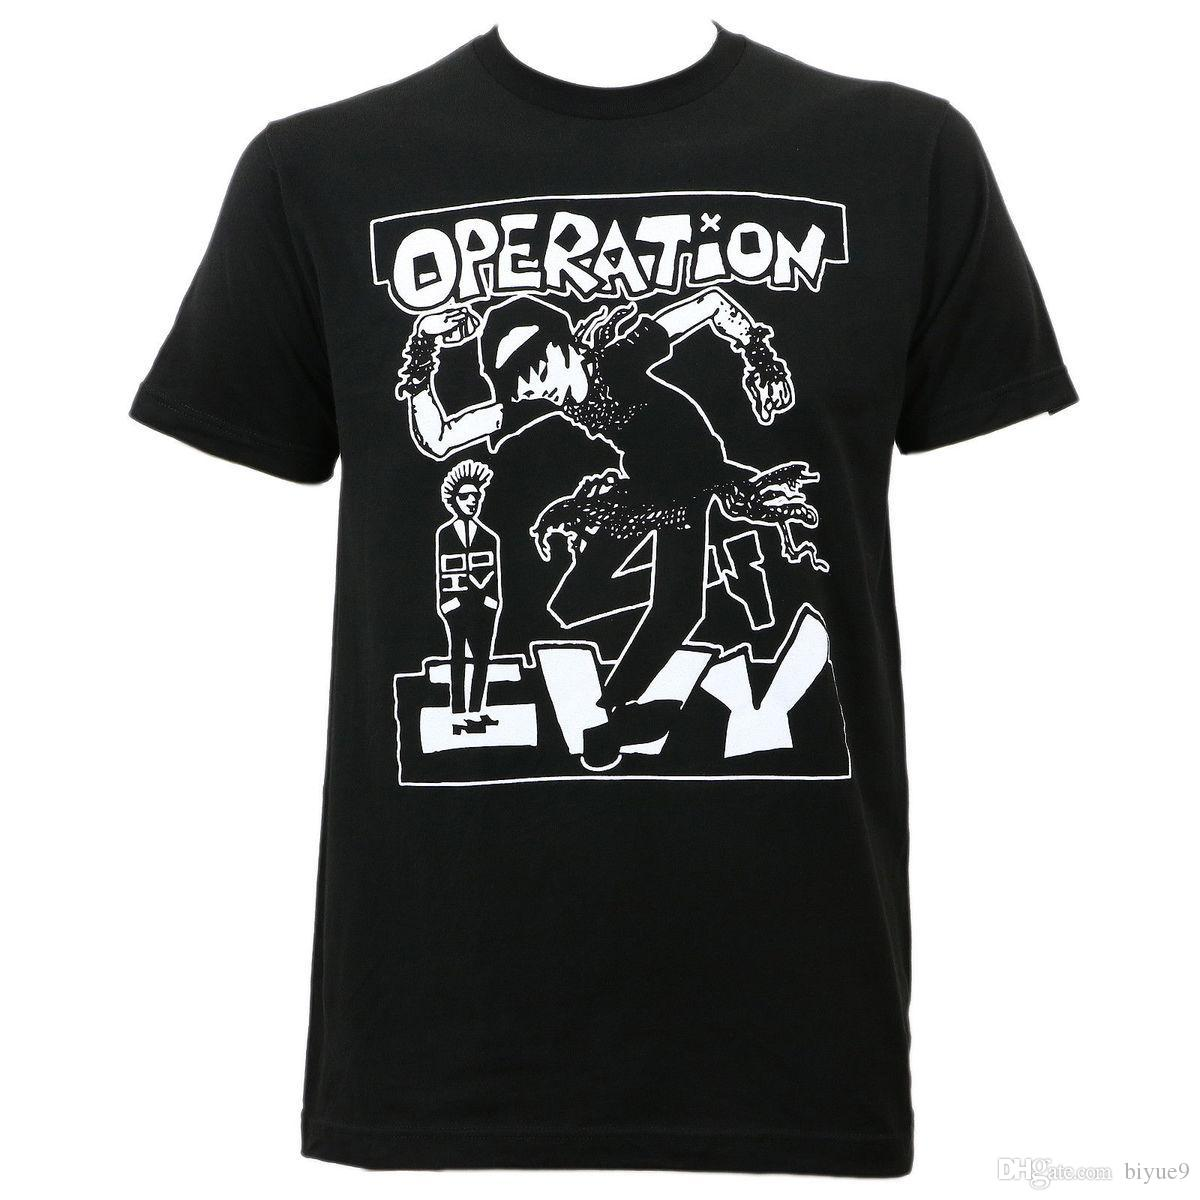 Authentic OPERATION IVY Skankin Ska Punk Slim-Fit T-Shirt S M L XL 3XL NEW 100% Cotton Men T Shirt Tees Custom